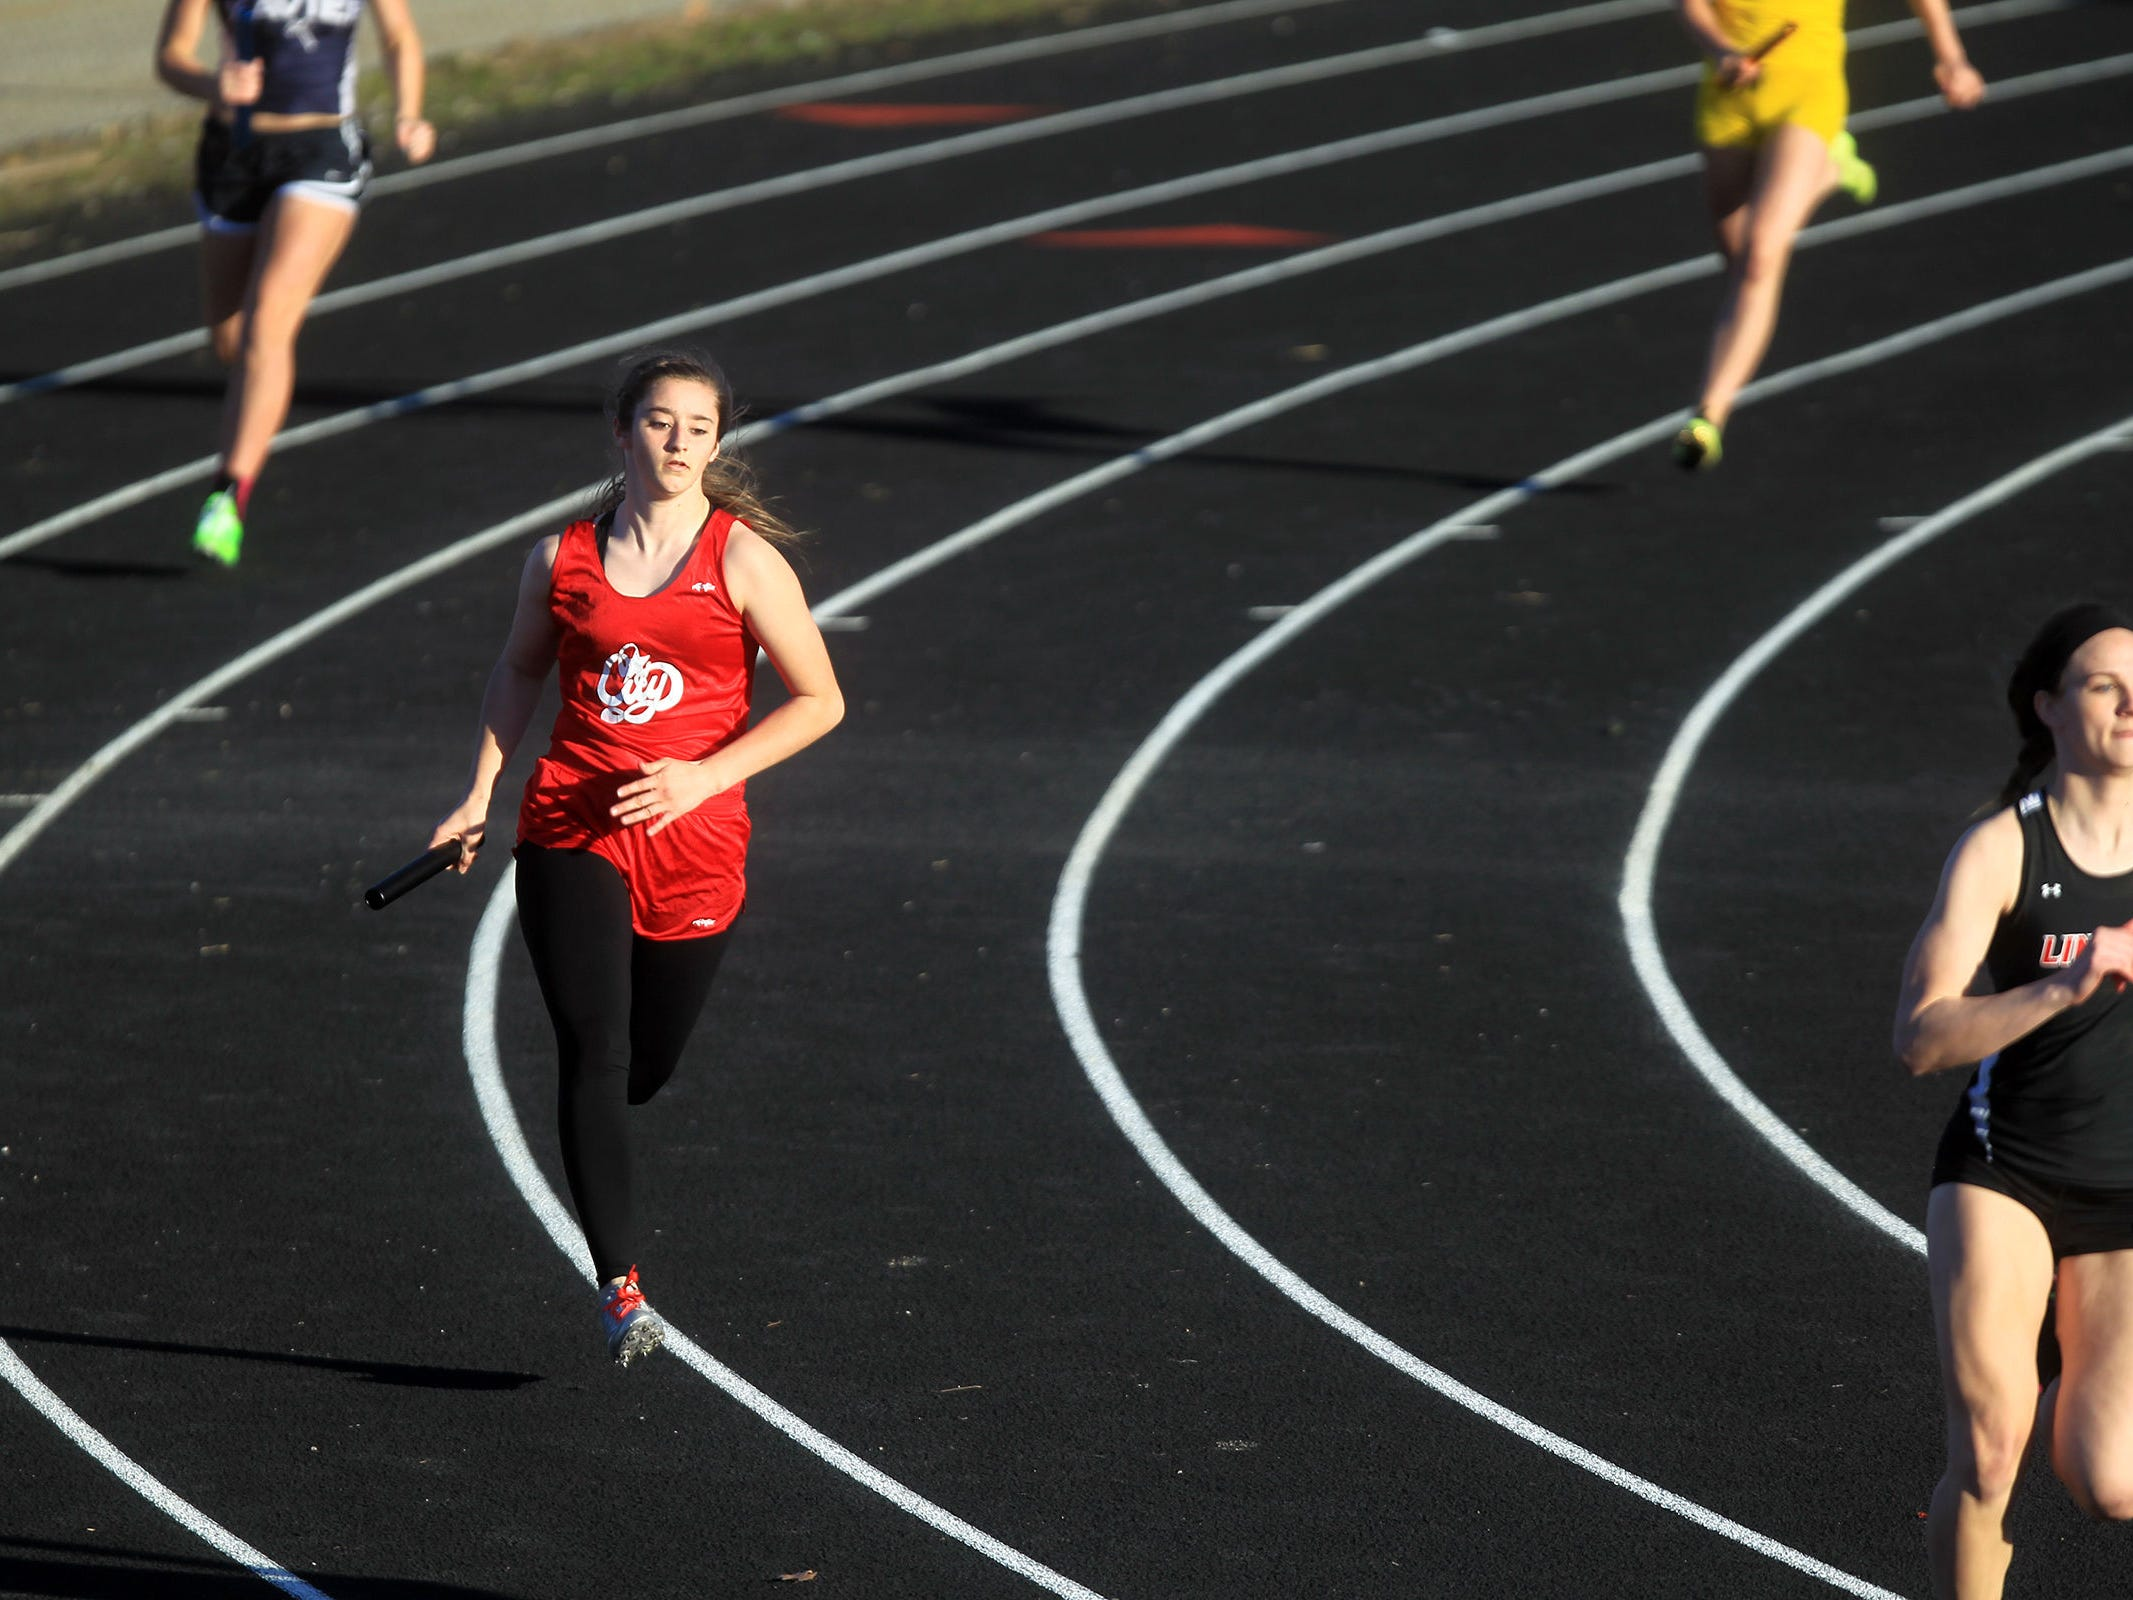 City High's Sara Blowers competes in the 4x200 meter relay at the Women of Troy Relays at West High on Tuesday, March 31, 2015. David Scrivner / Iowa City Press-Citizen